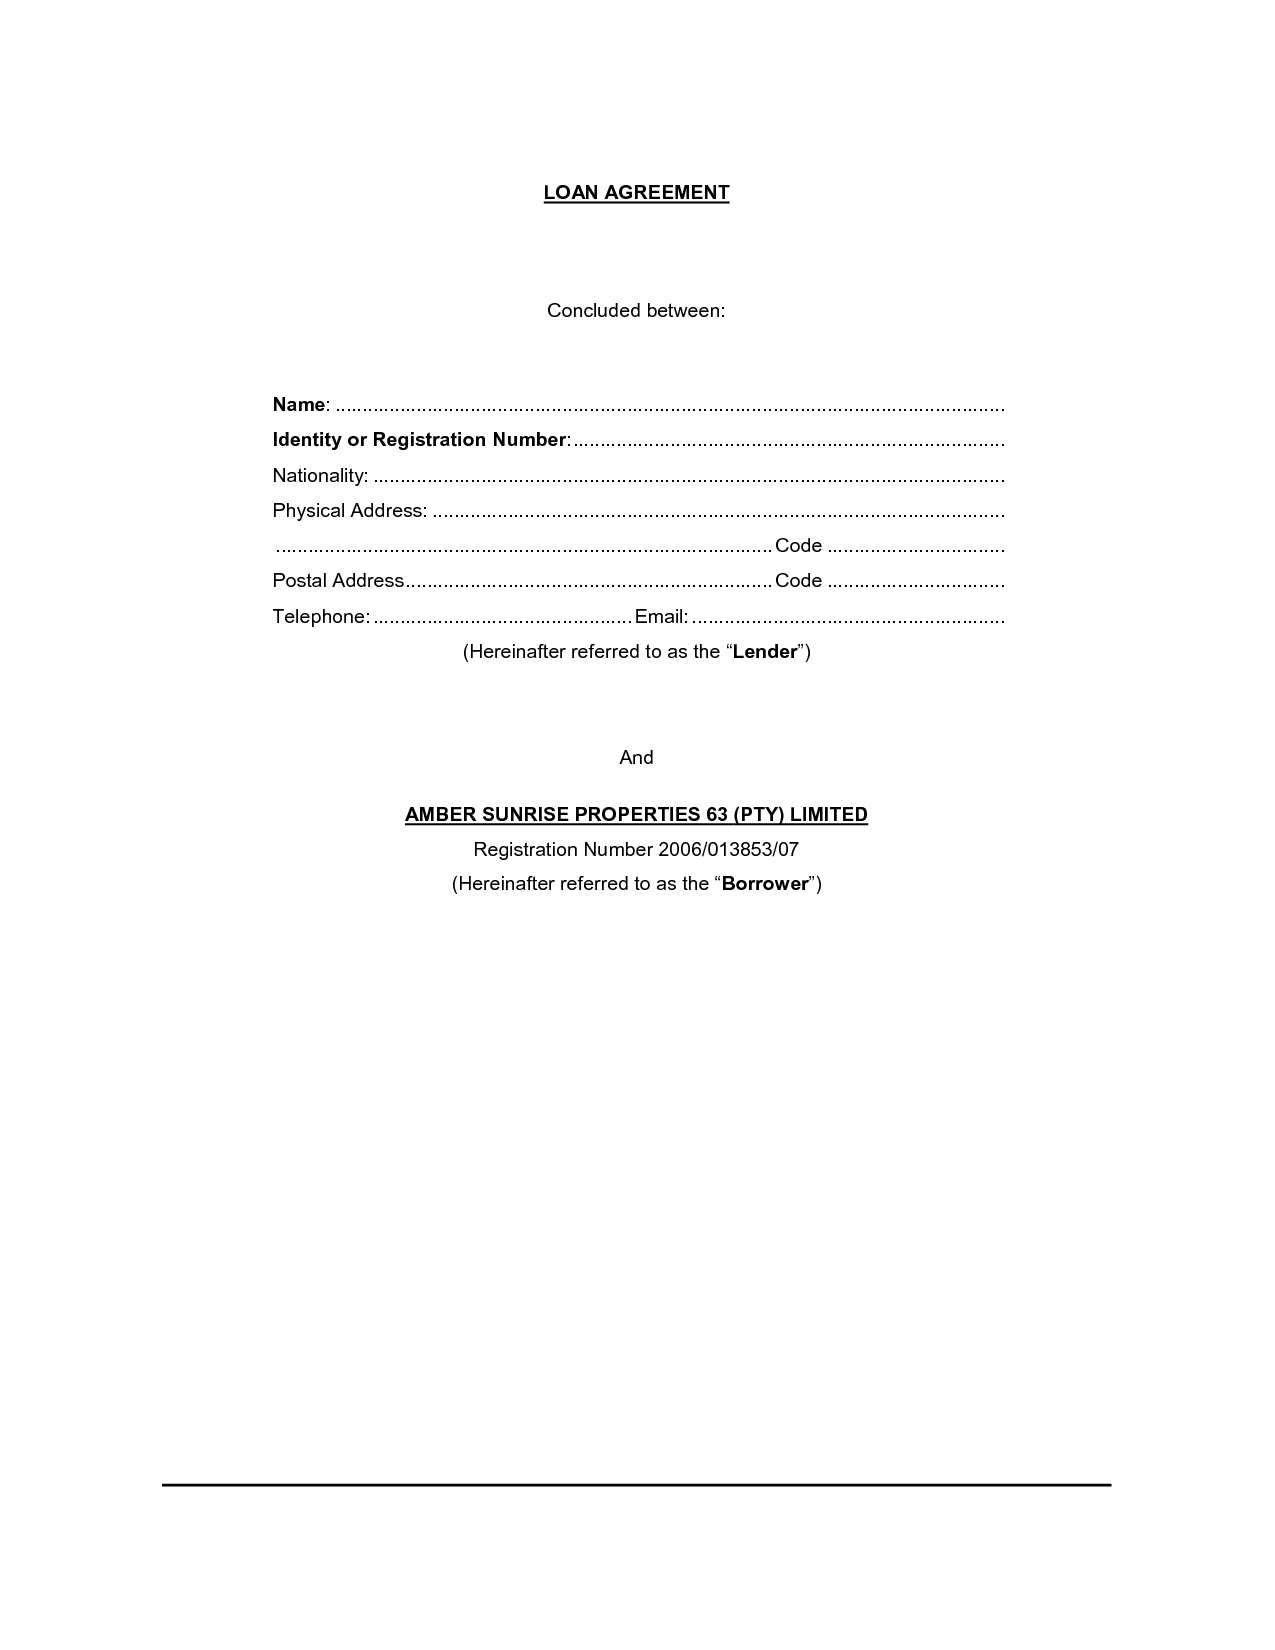 loanagreementtemplatefree simple loan contract – Agreement Template Free